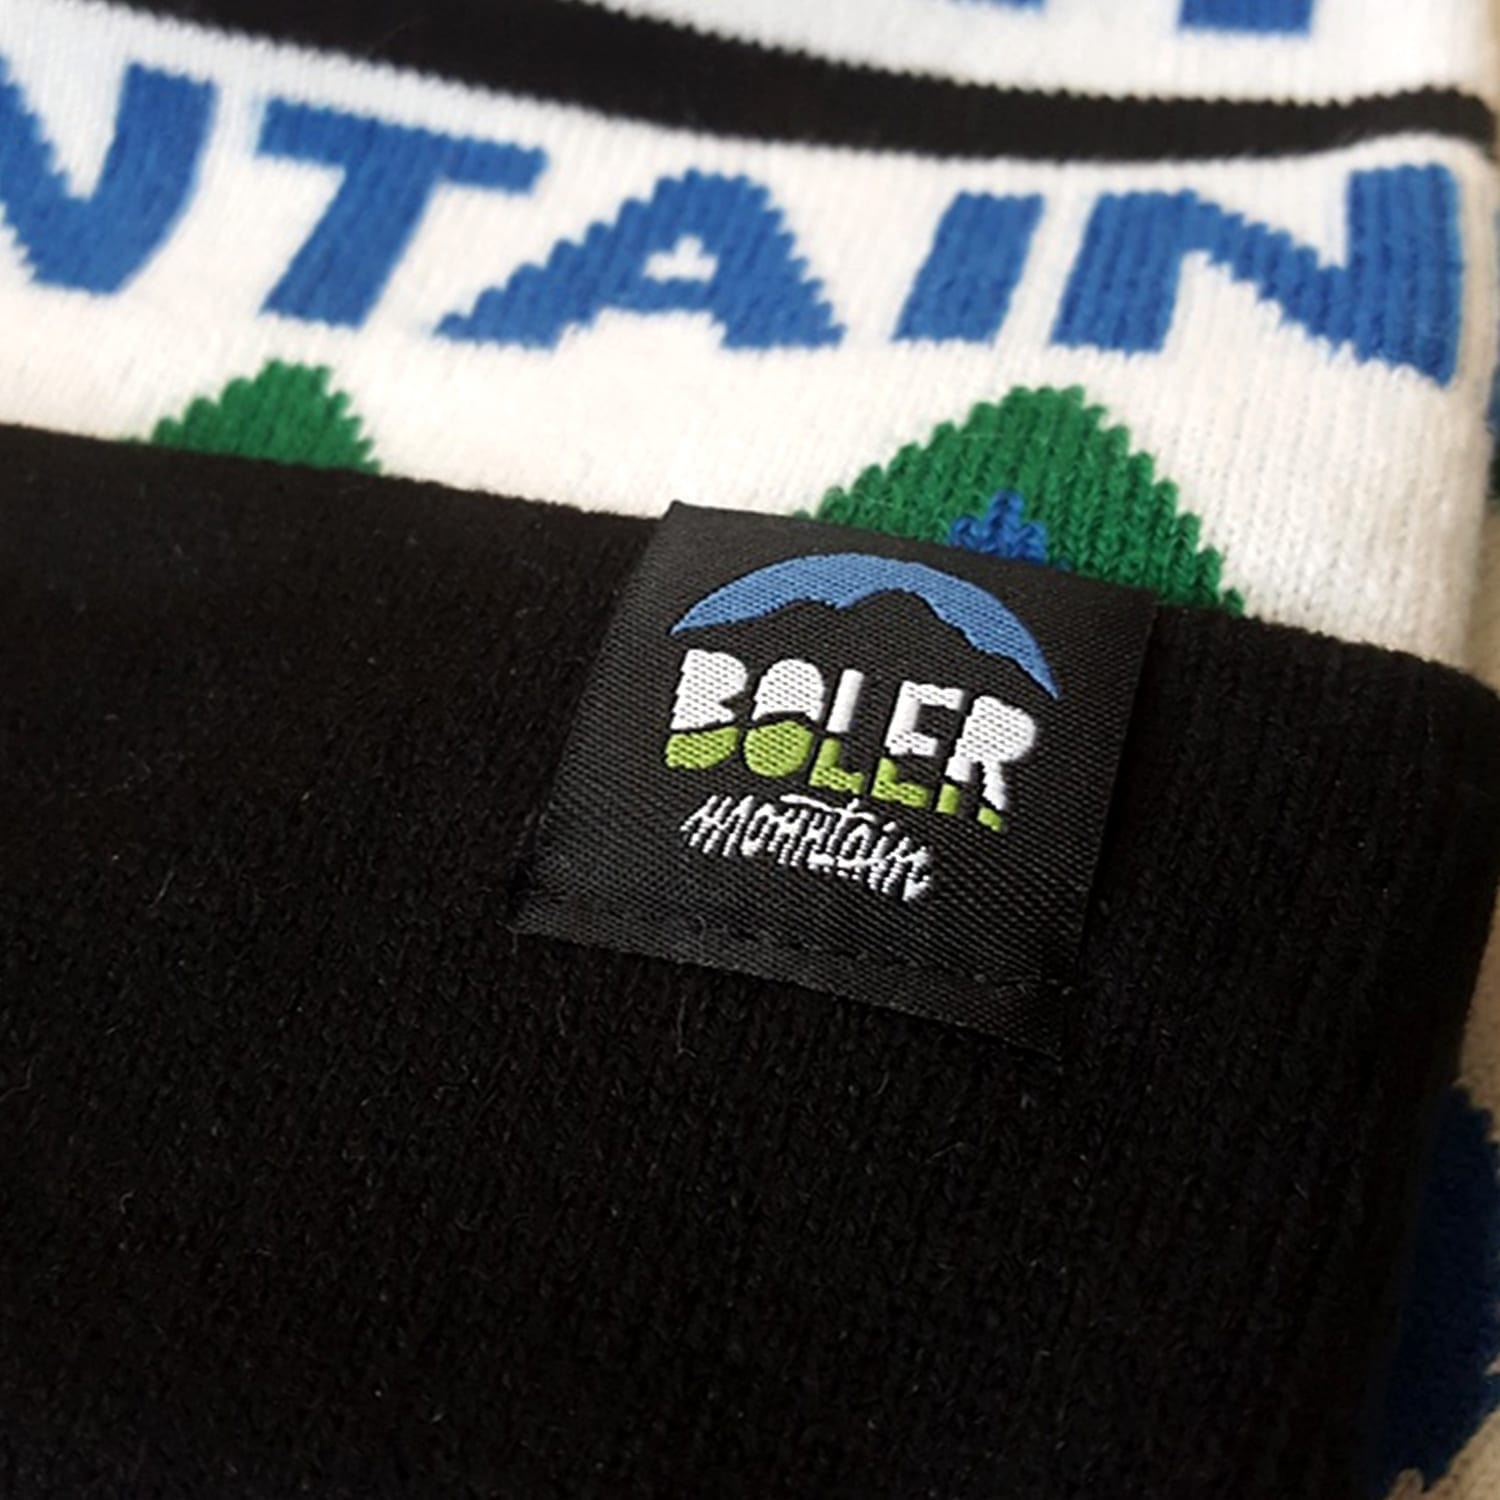 Custom Knit Toques Beanies Embroidered Patches